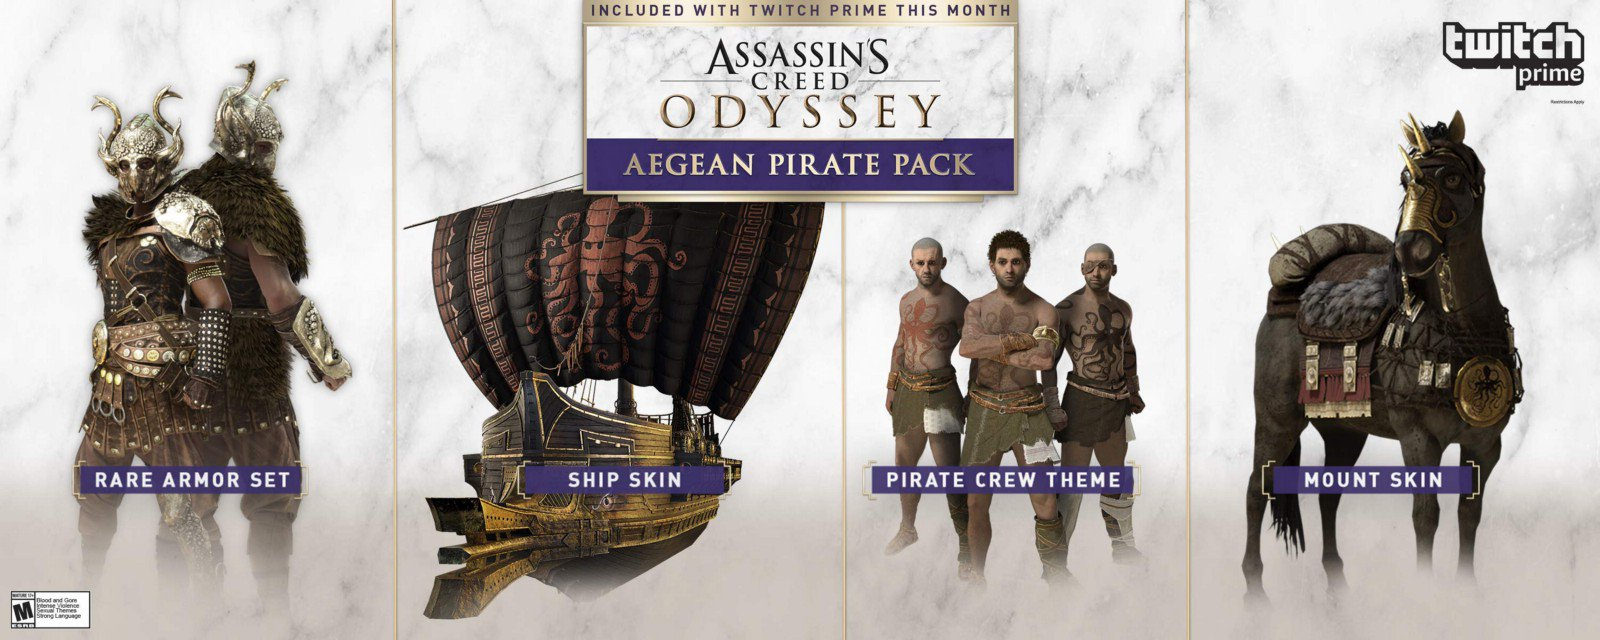 Pack Pirata del Egeo Assassin's Creed: Odyssey